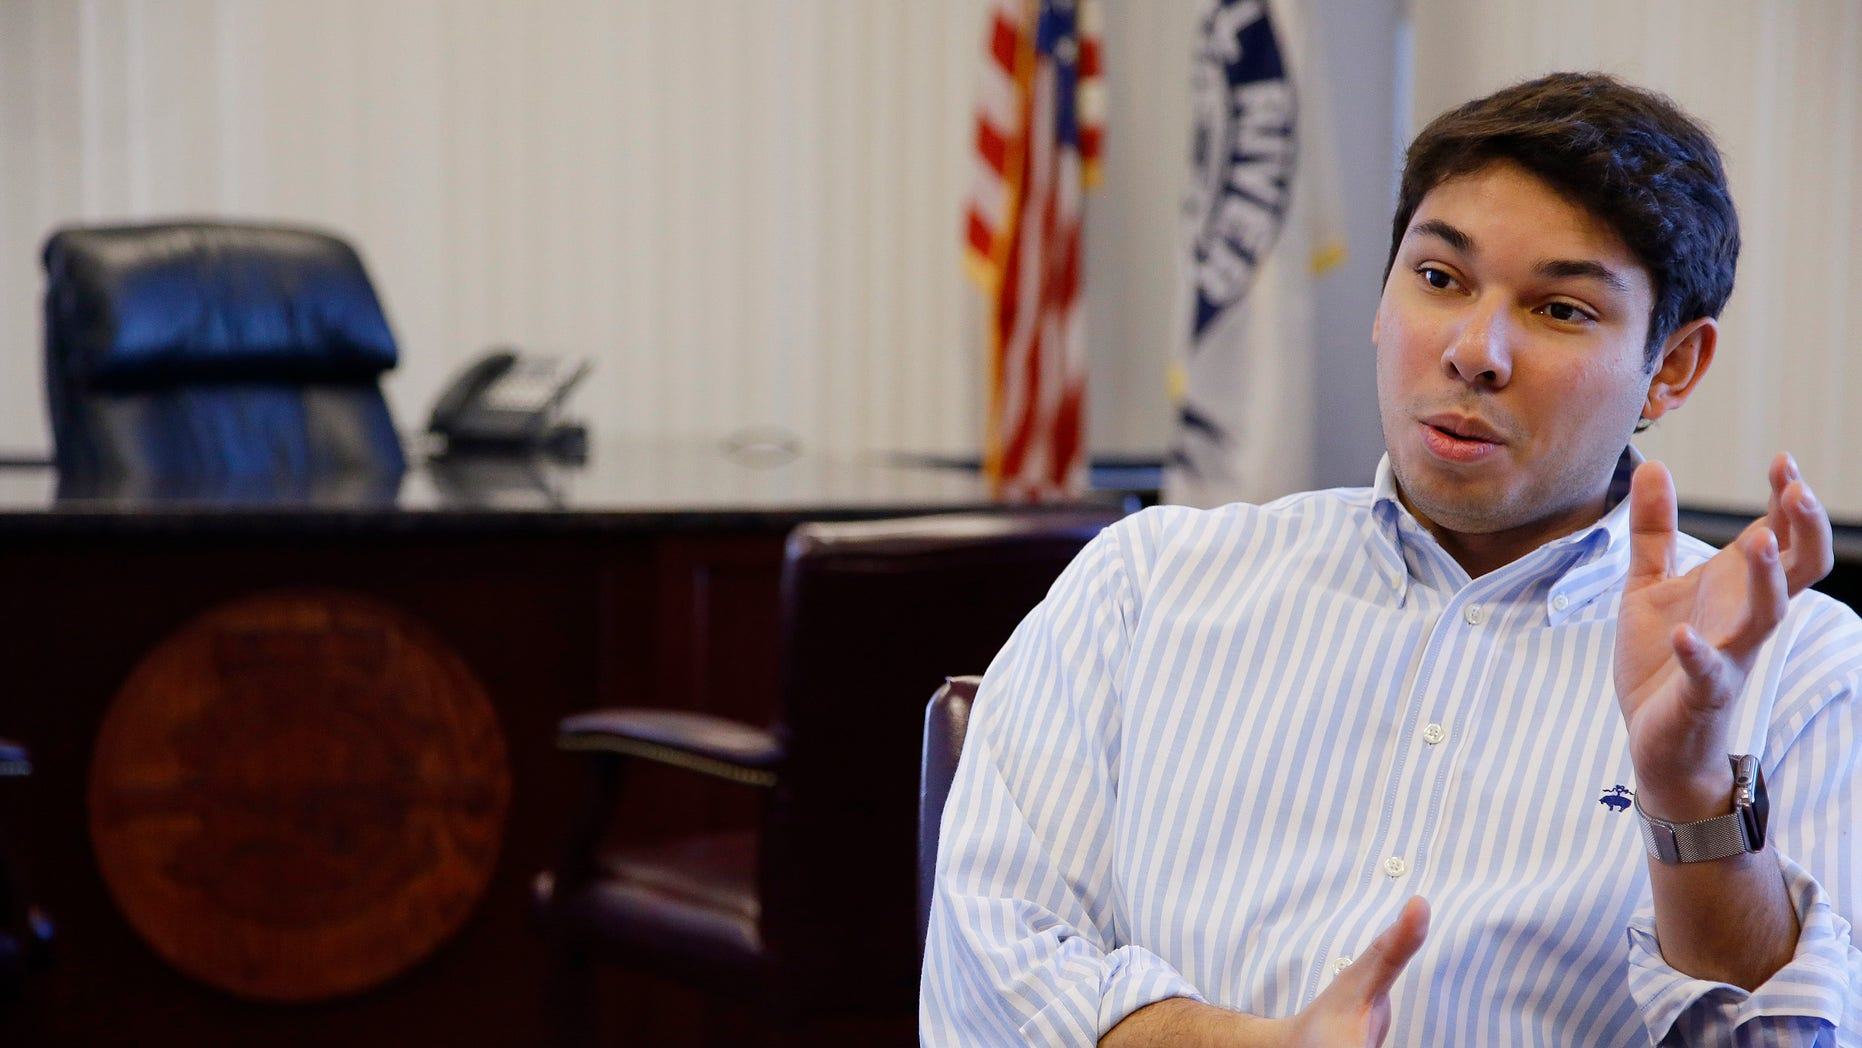 In this Wednesday, Jan. 6, 2016 photo newly elected Fall River Mayor Jasiel Correia has a conversation in his city hall office in Fall River, Mass. Correia, 24, is the youngest Fall River mayor to ever serve. (AP Photo/Stephan Savoia)